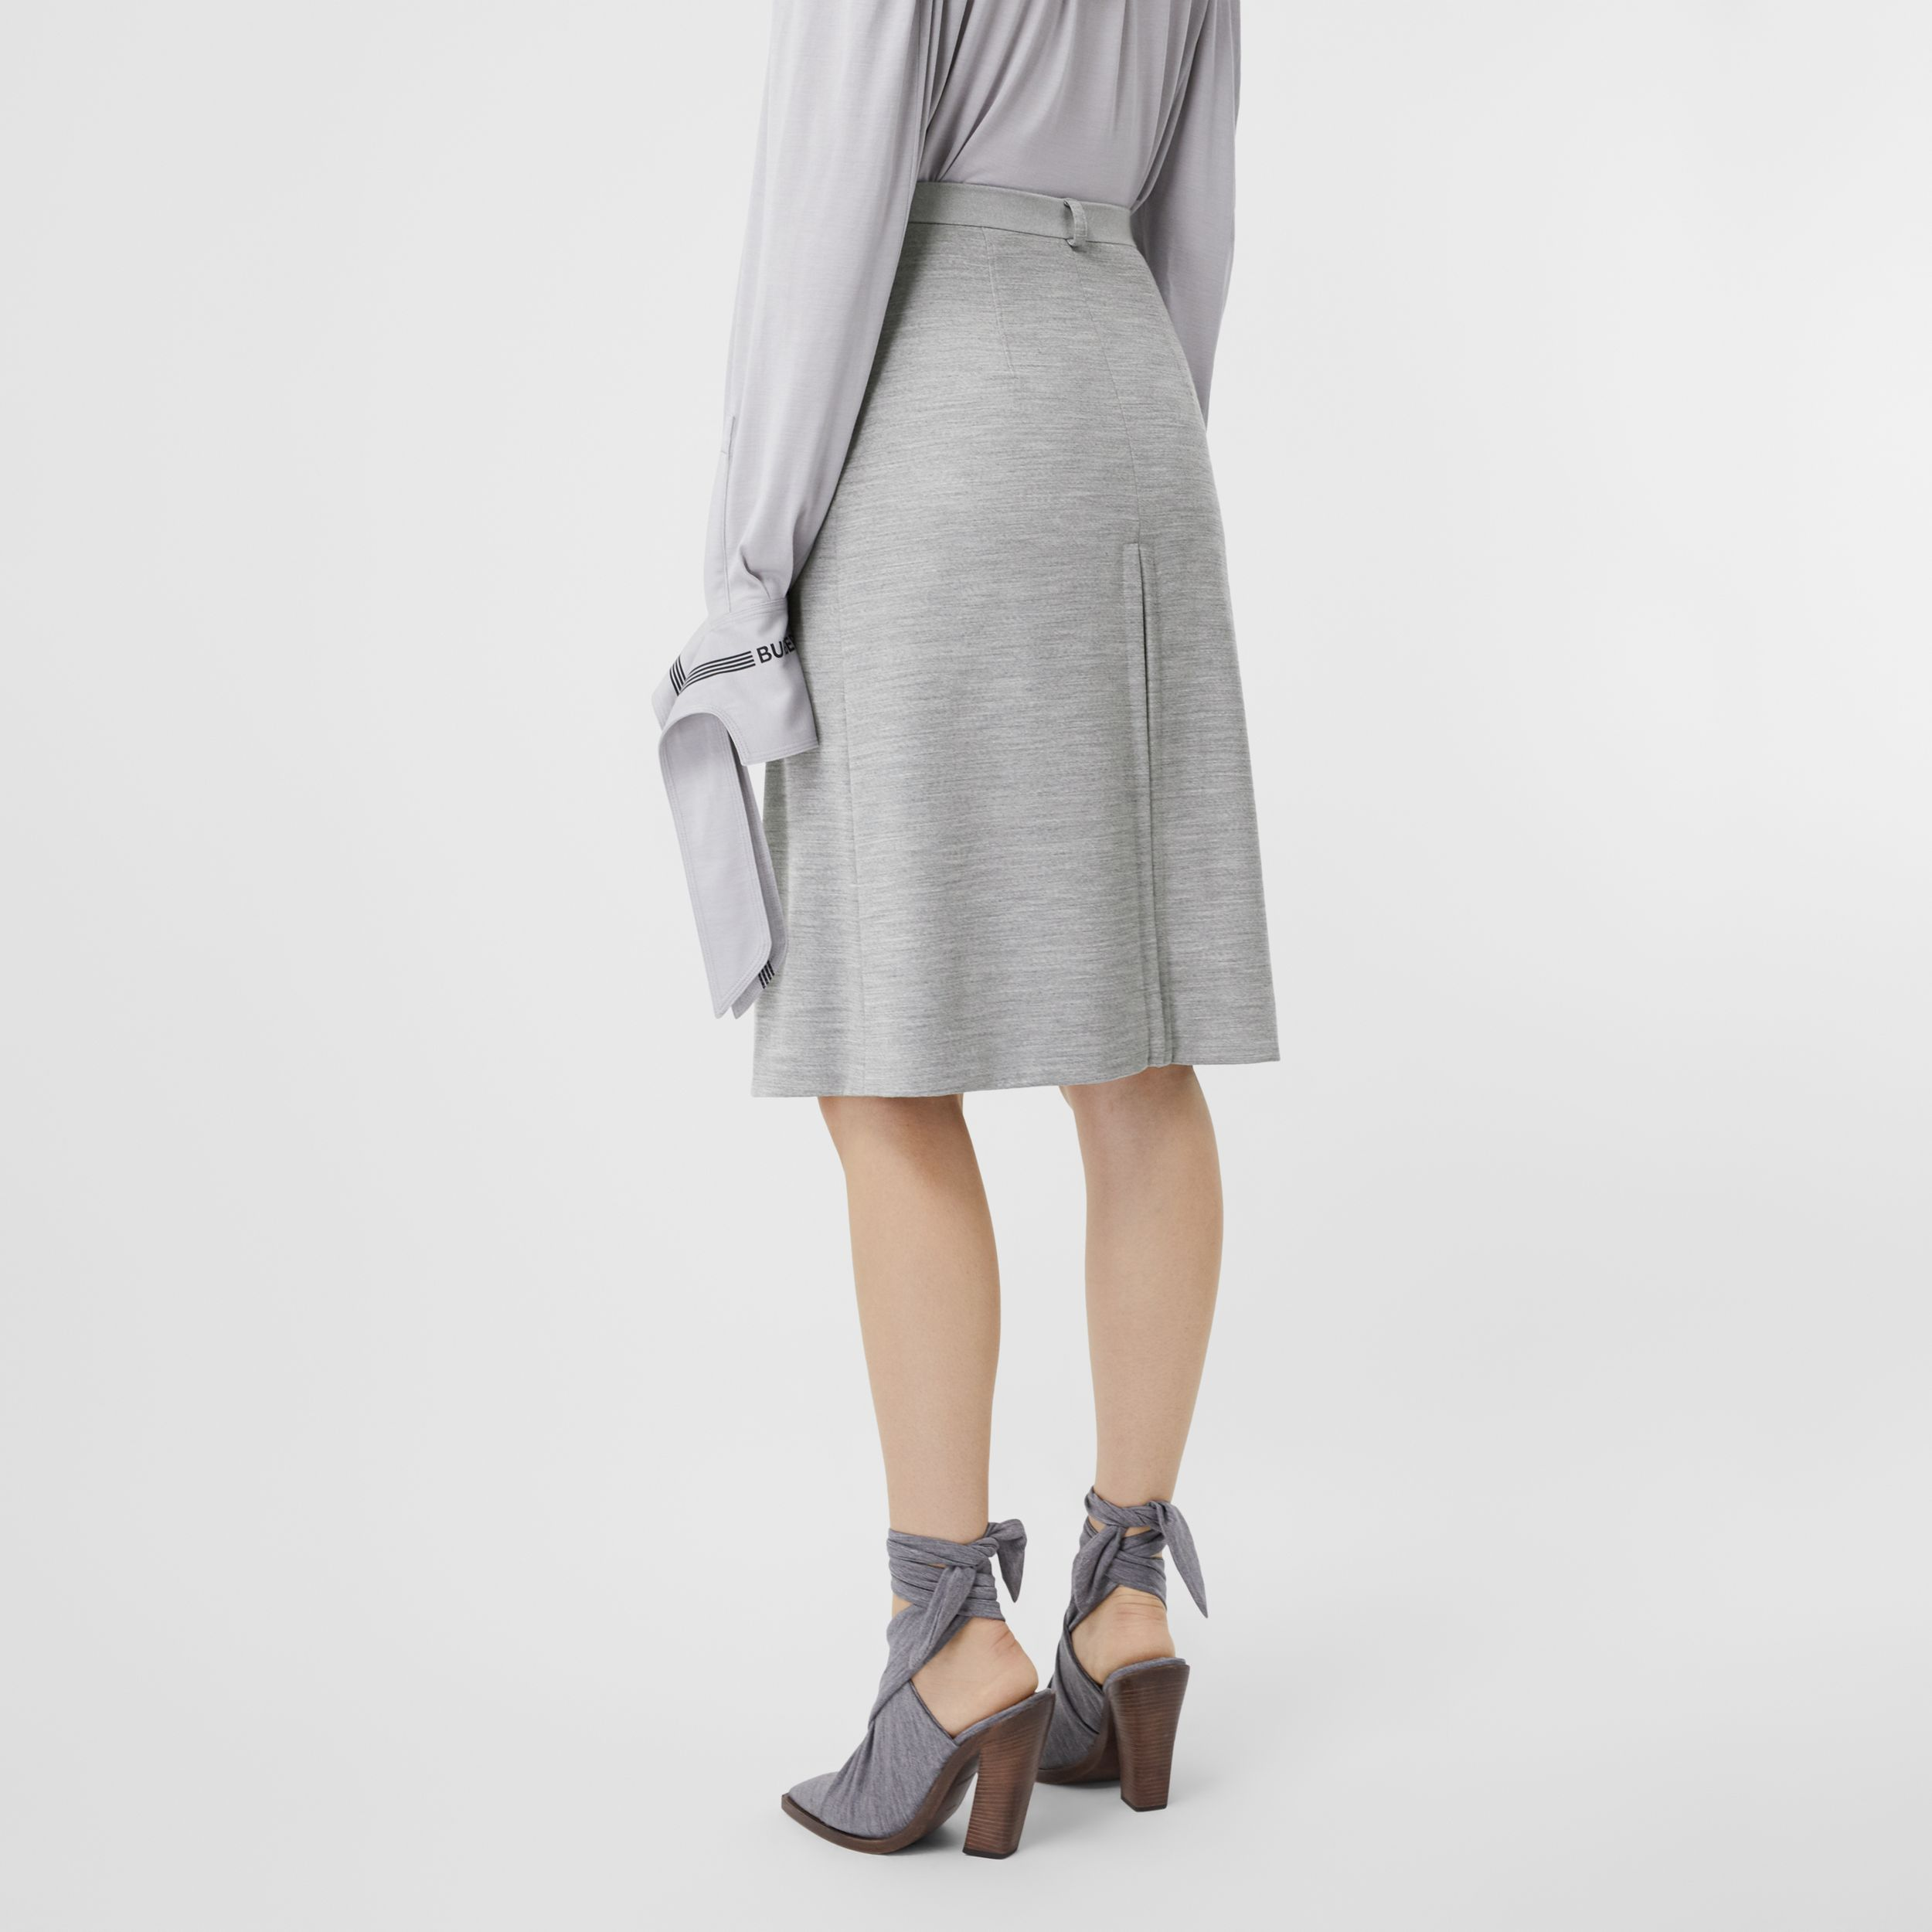 Box-pleat Detail Technical Wool Jersey A-line Skirt in Cloud Grey - Women | Burberry - 3